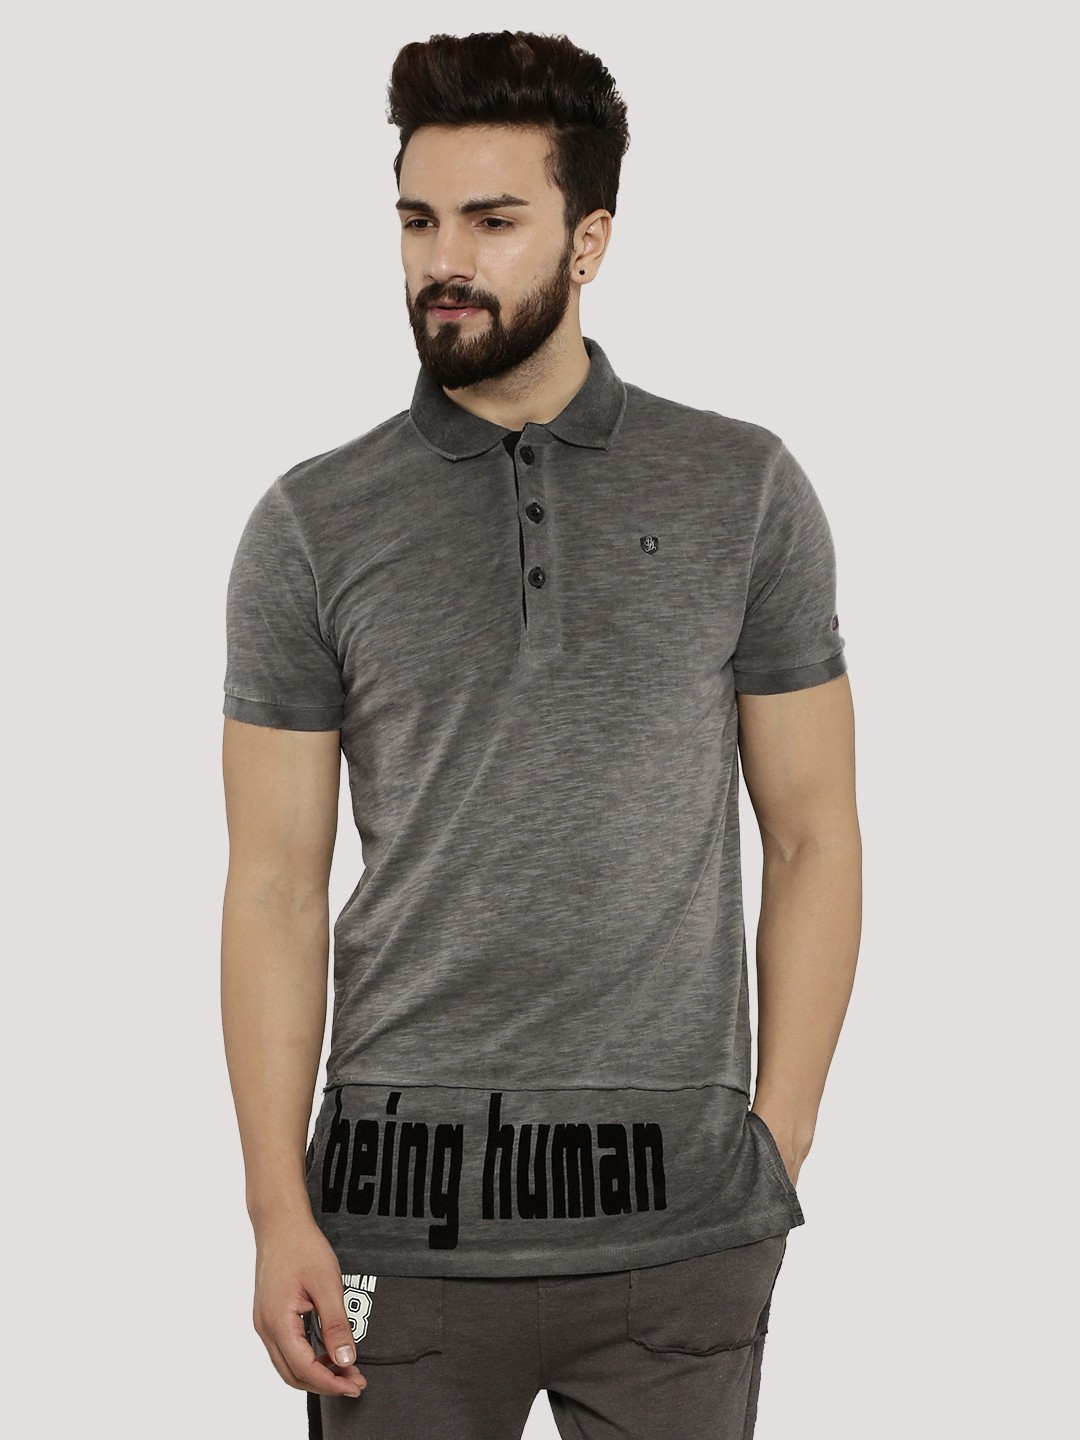 Buy being human long line oil wash polo with side zip for for Being human t shirts buy online india